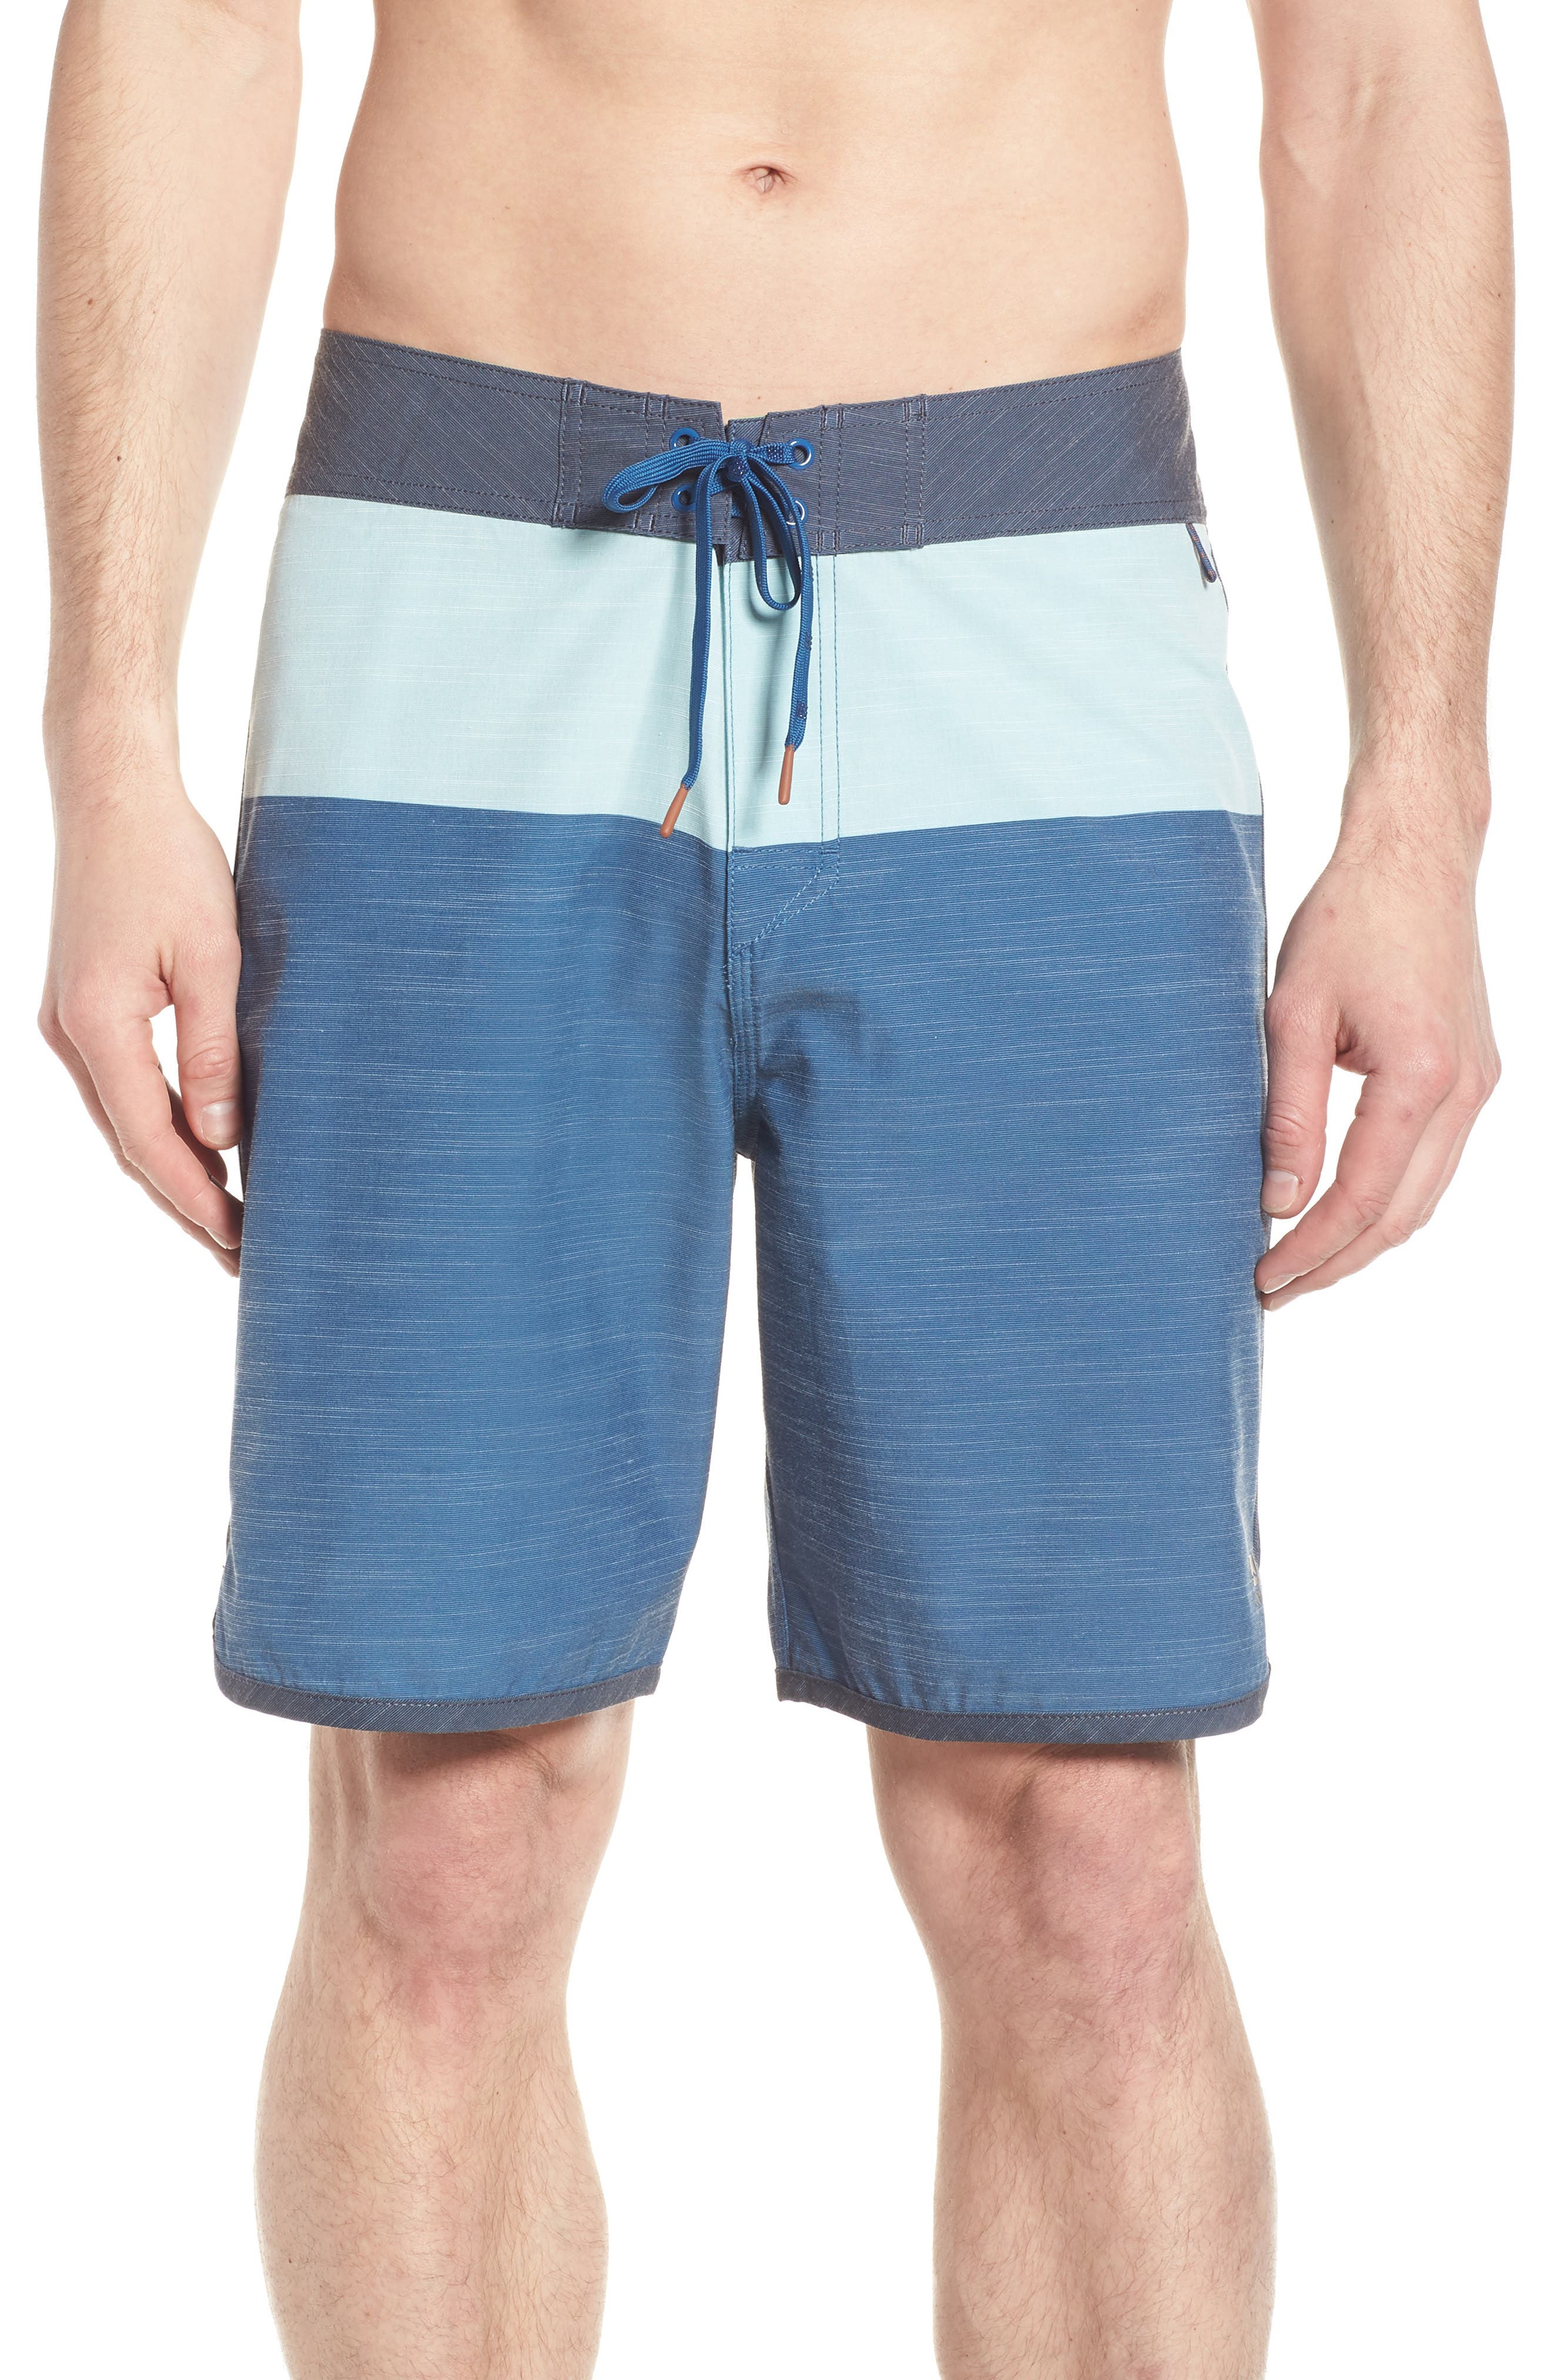 Beachcomber Board Shorts,                             Main thumbnail 1, color,                             Ocean Blue